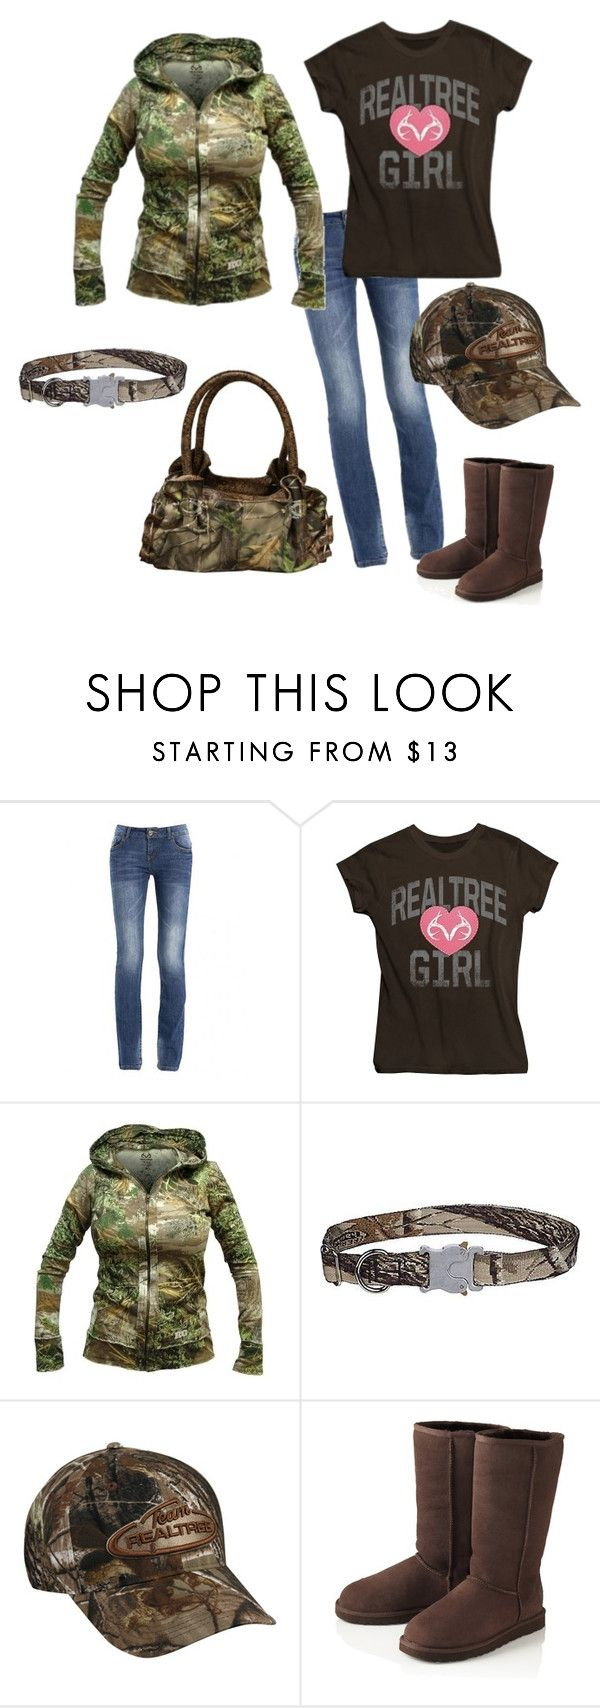 """""""Realtree Camo Wear"""" by sonia-winland ❤ liked on Polyvore featuring Realtree, UGG Australia, realtree camo, camo gear and realtree"""